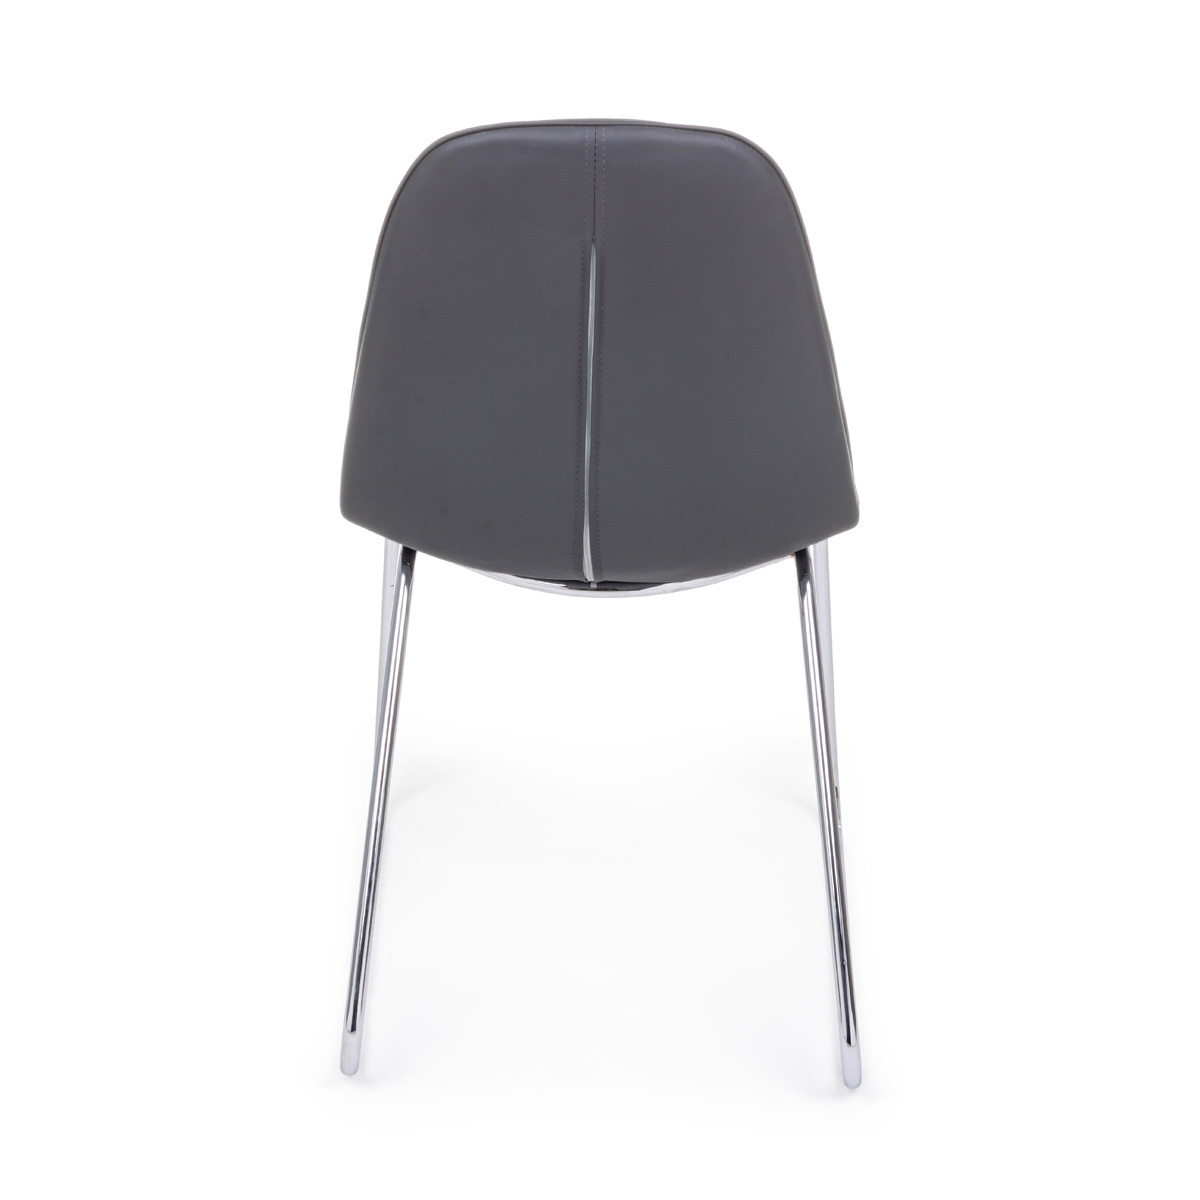 Photos 3: Bizzotto Chair in metal and eco-leather - anthracite 0731711